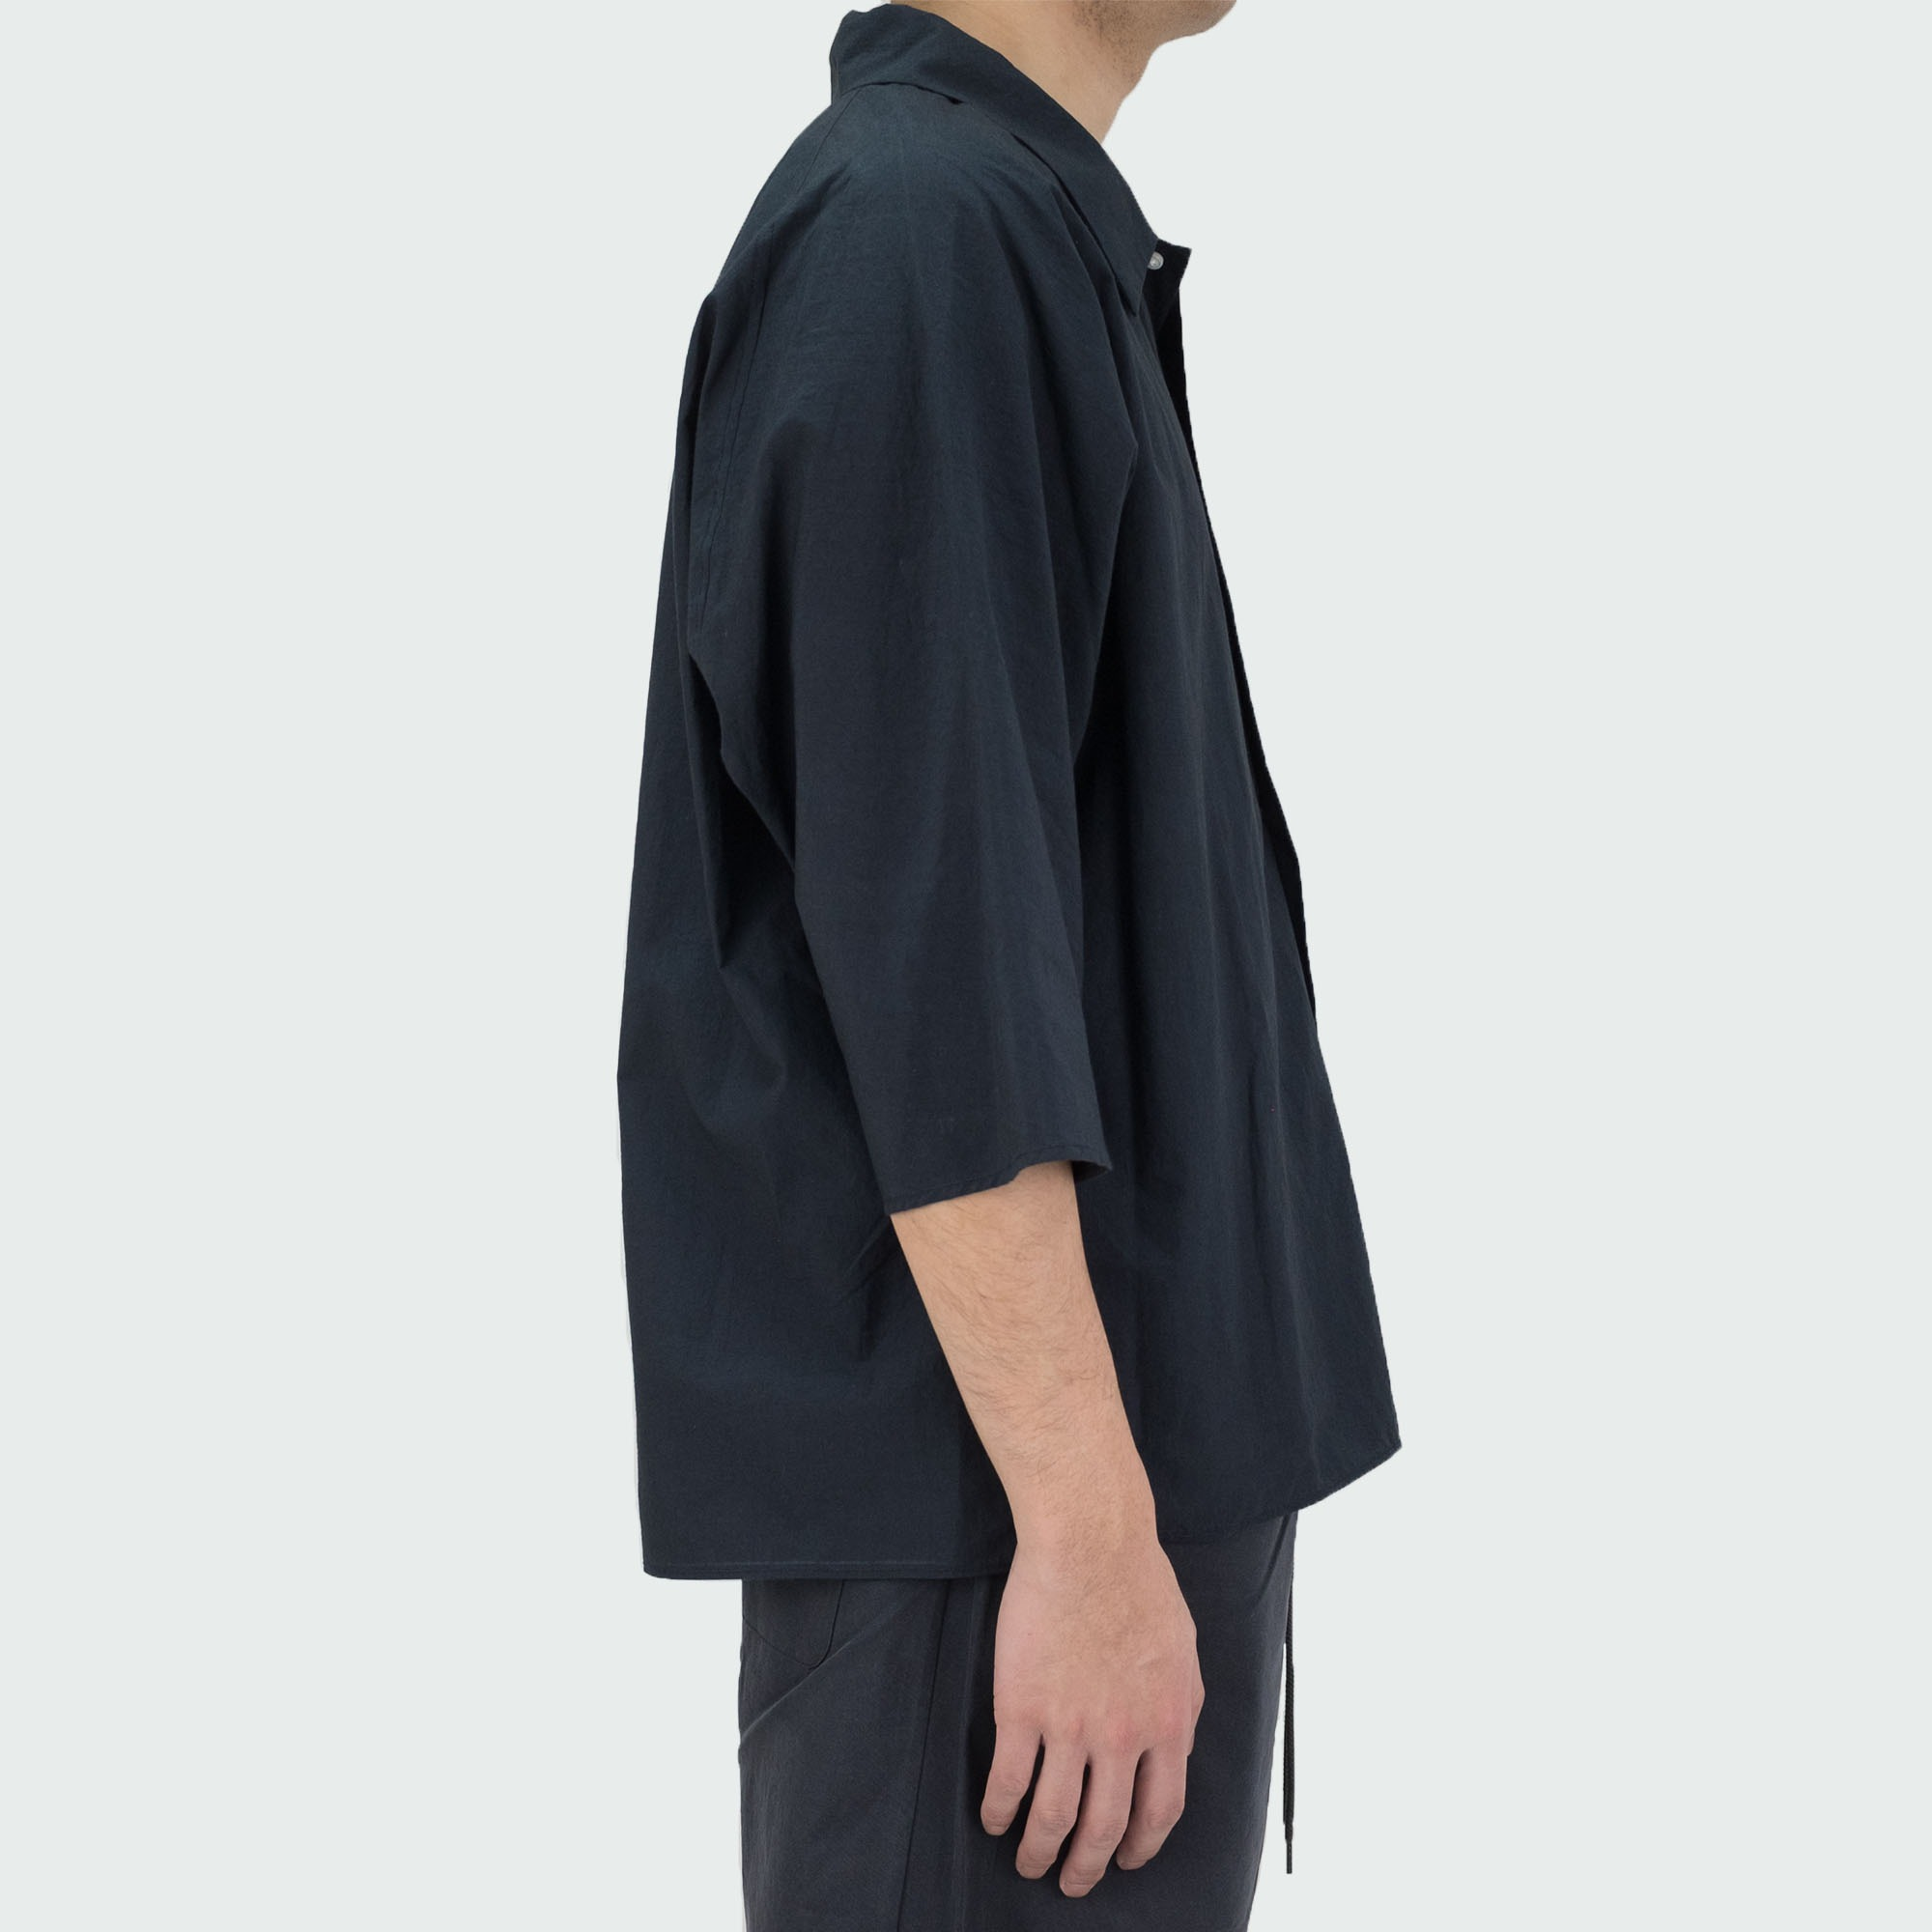 Dolman Sleeve S-S Shirt Black 3